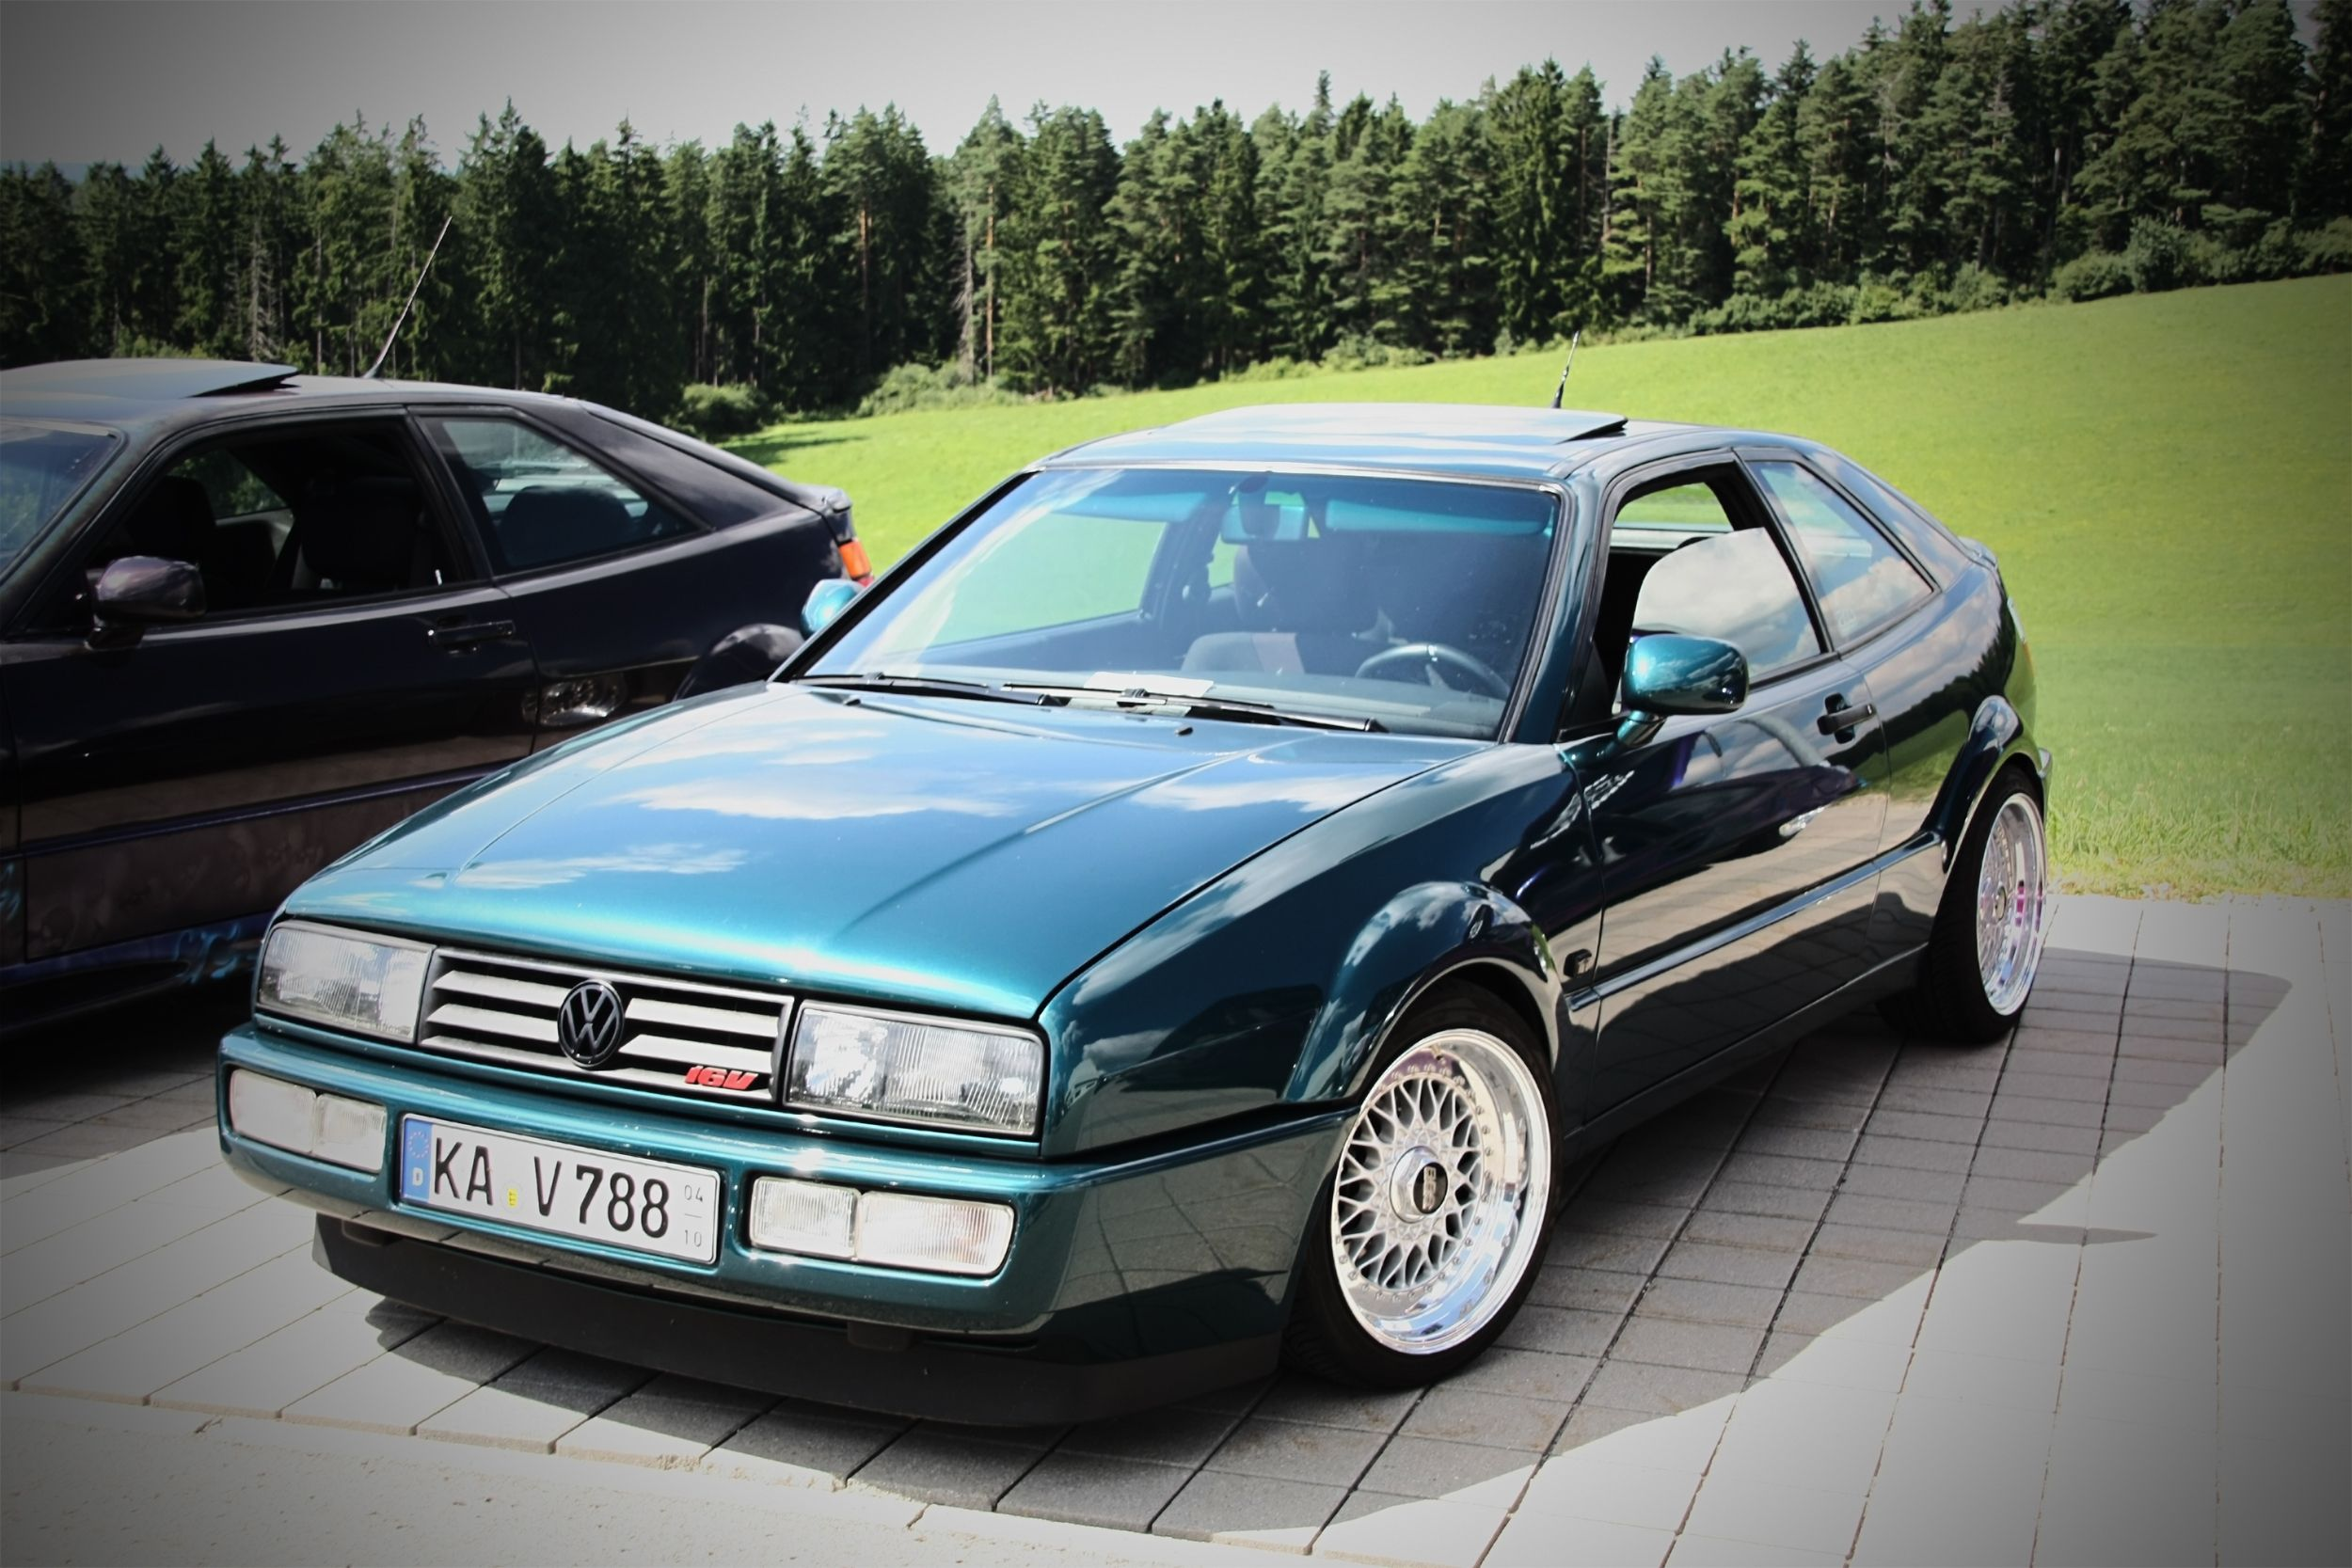 vw corrado beautiful car dreams my dream garage pinterest cars volkswagen and vw scirocco. Black Bedroom Furniture Sets. Home Design Ideas